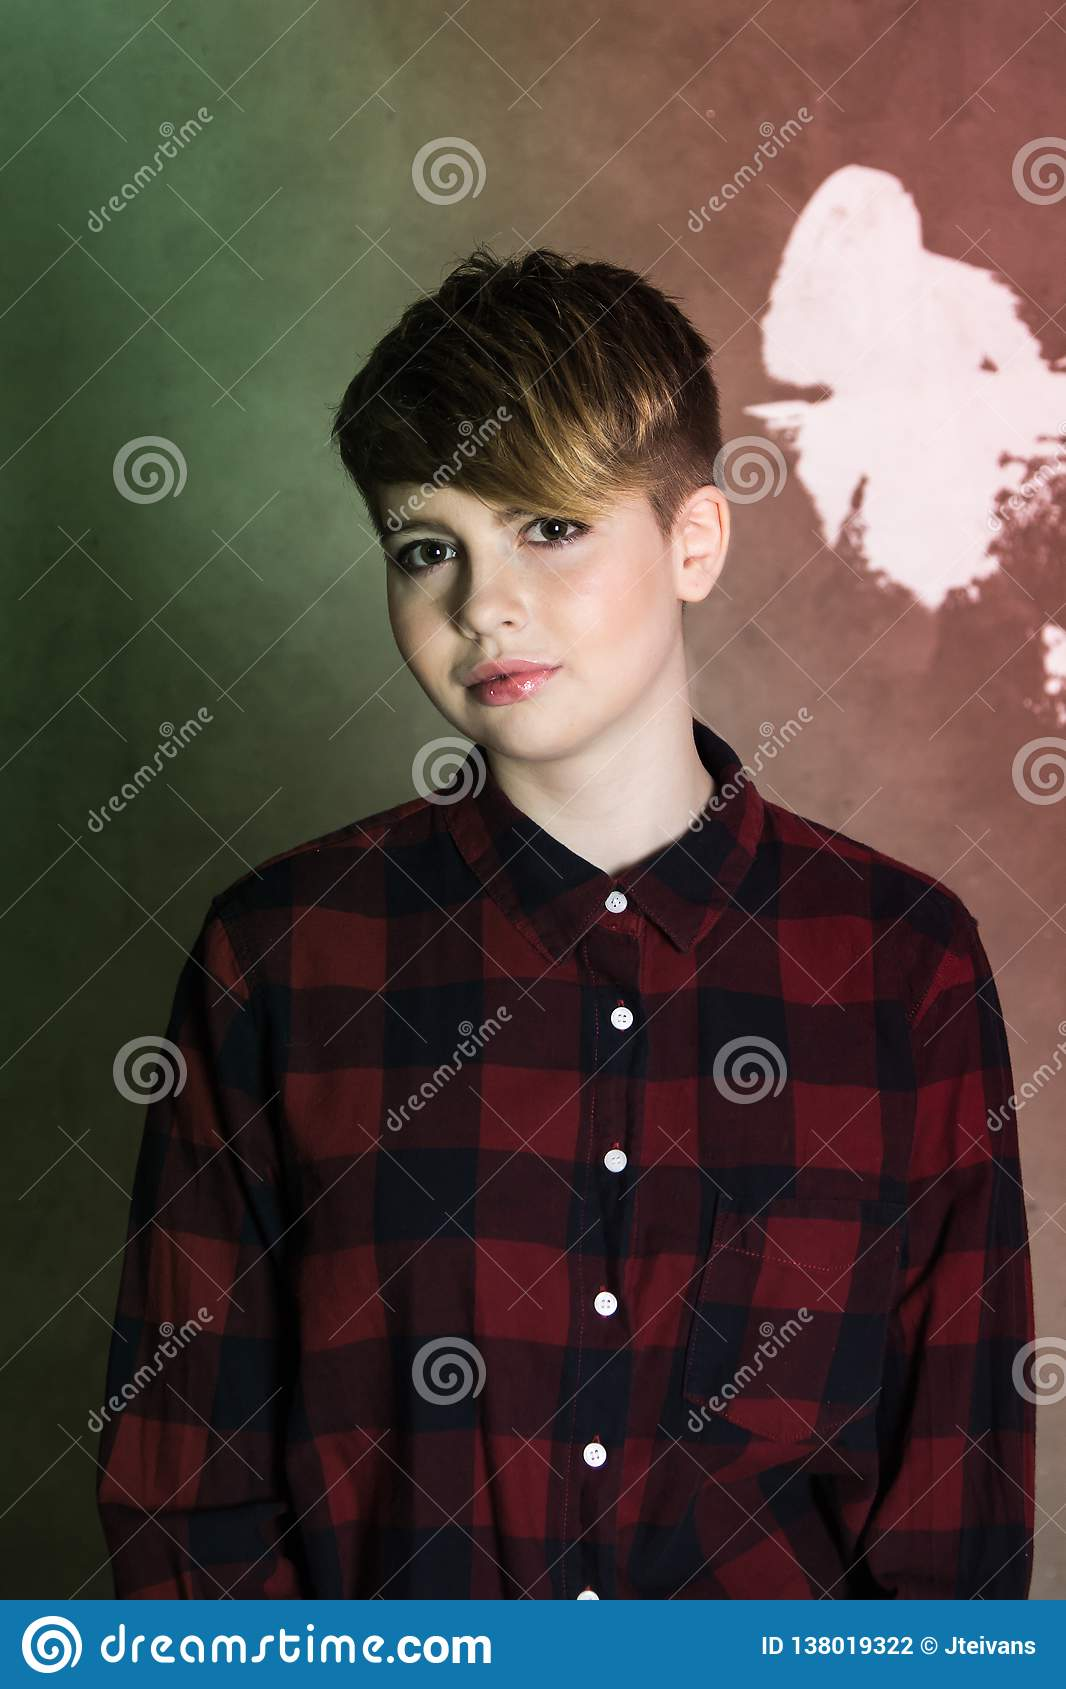 Young Girl With Short Haircut Concrete Wall On Background Stock Photo Image Of Female Attractive 138019322